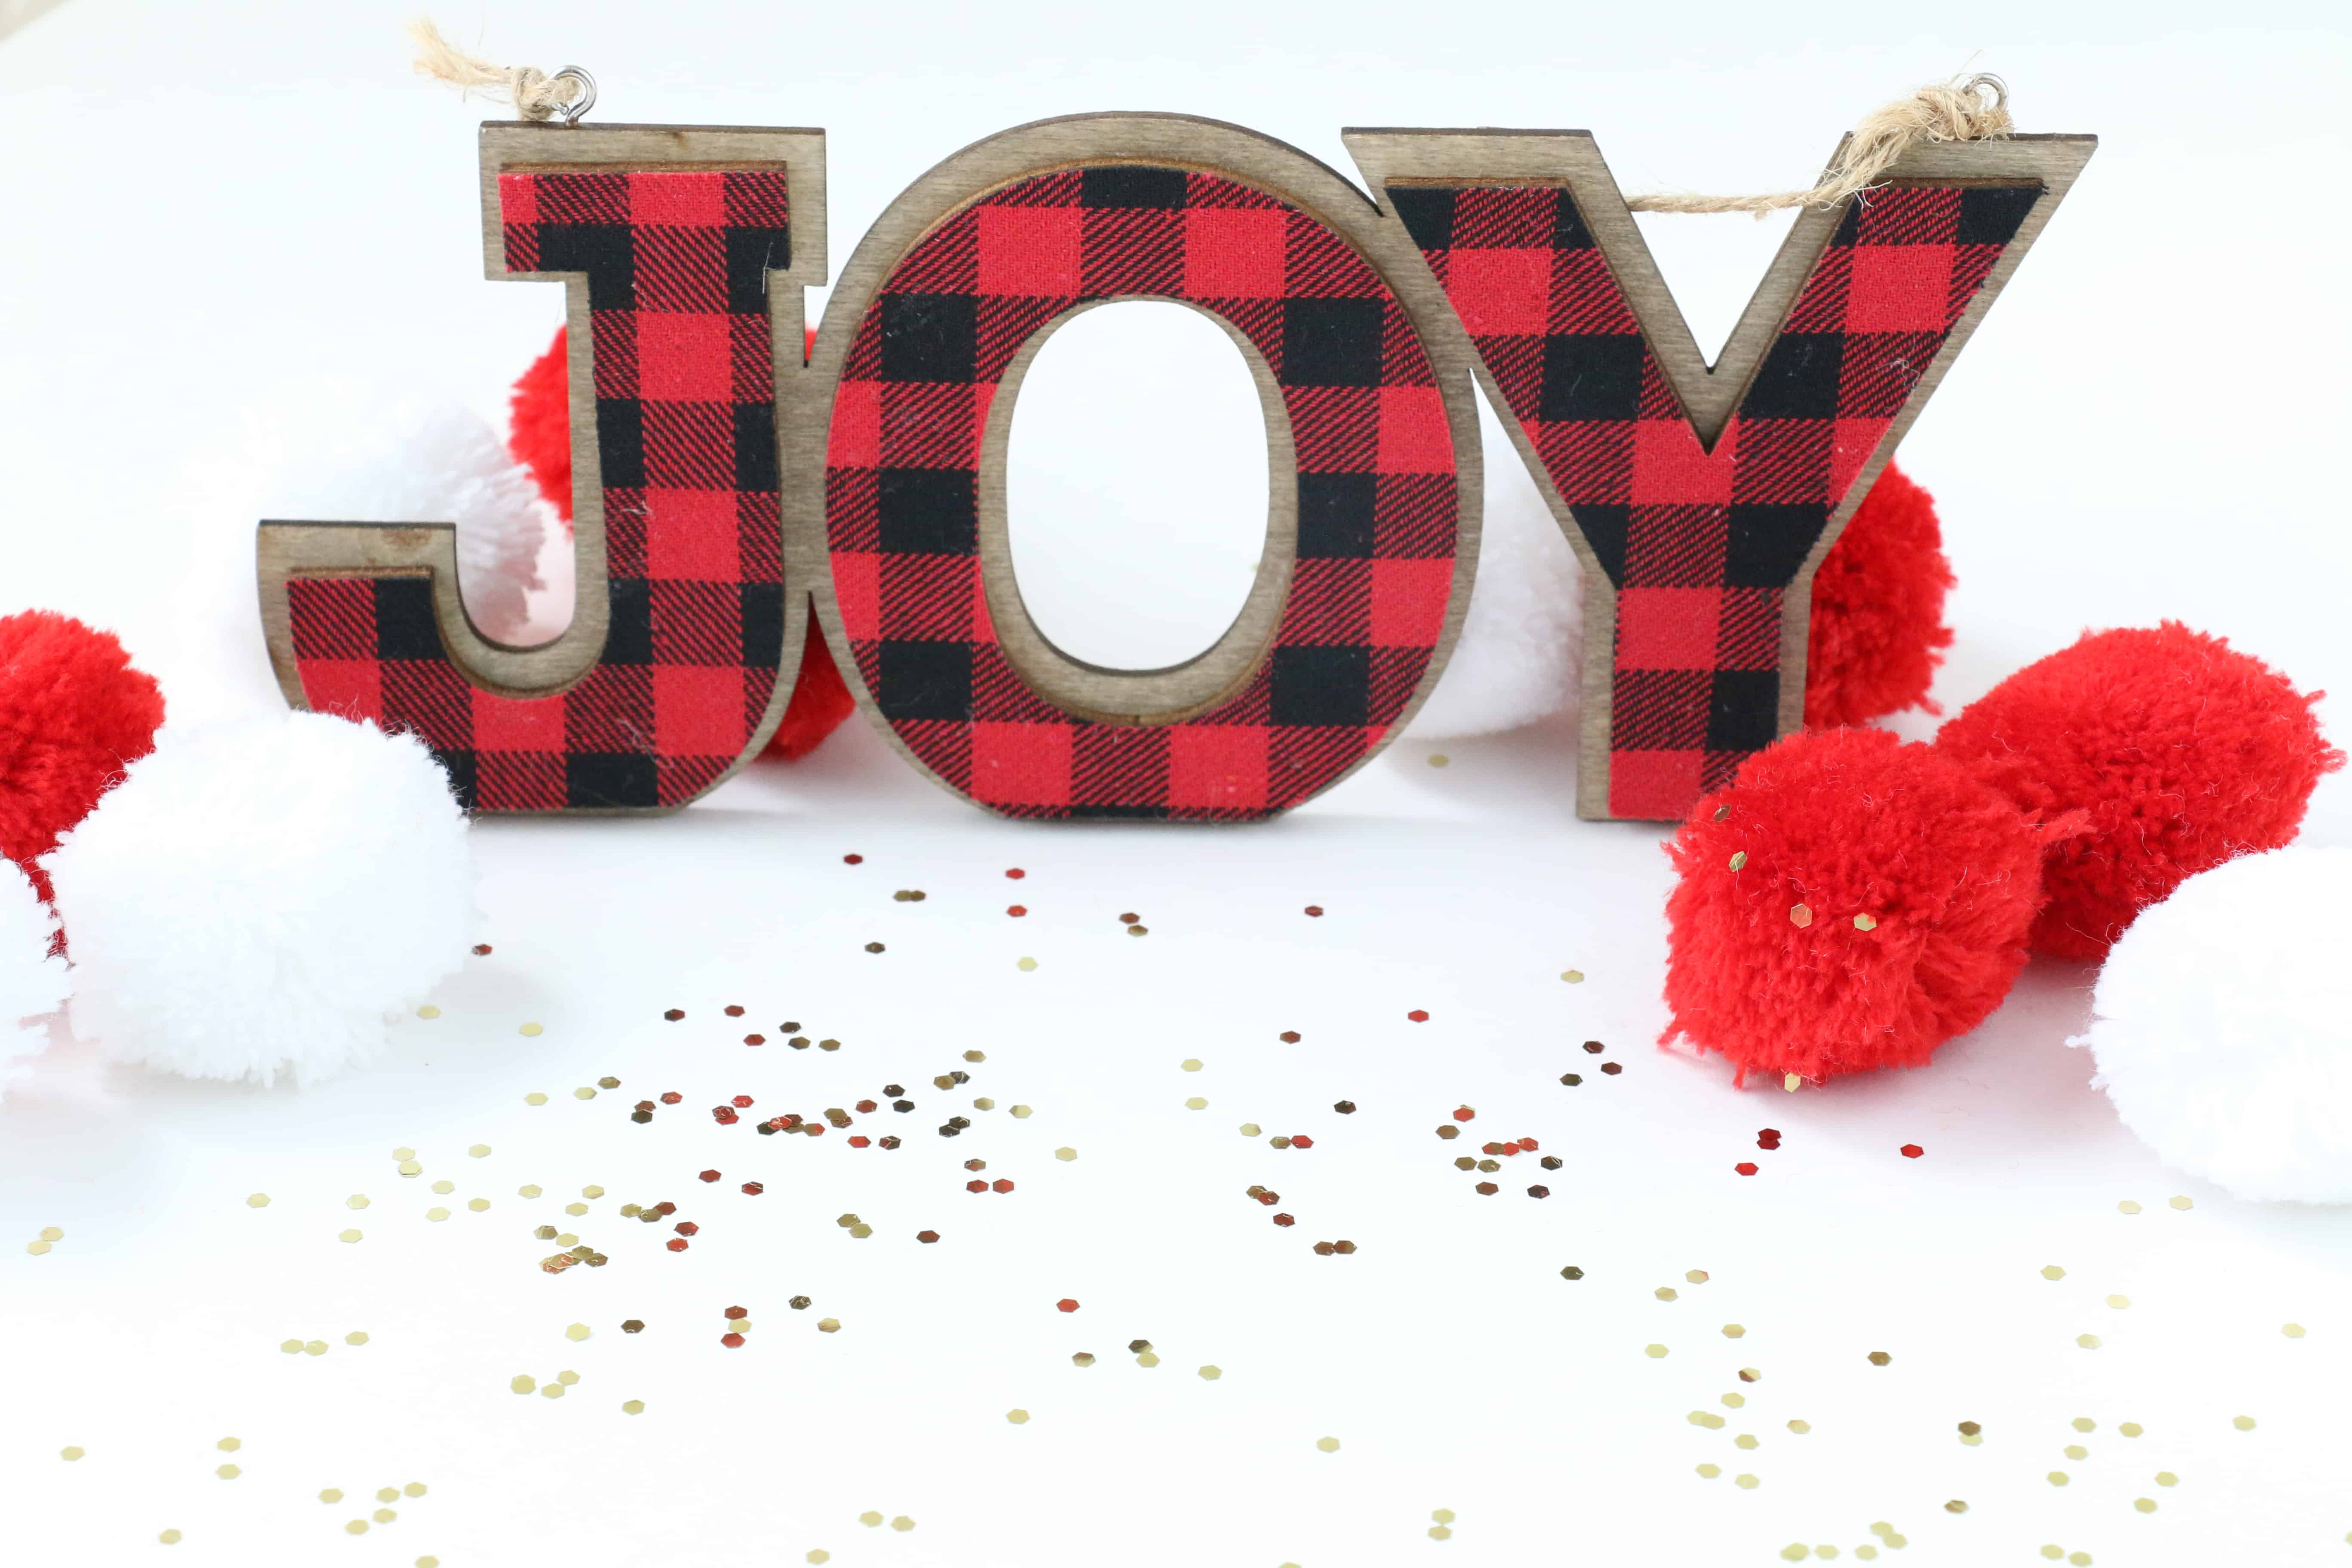 Blog Post Ideas for Christmas and the Holidays